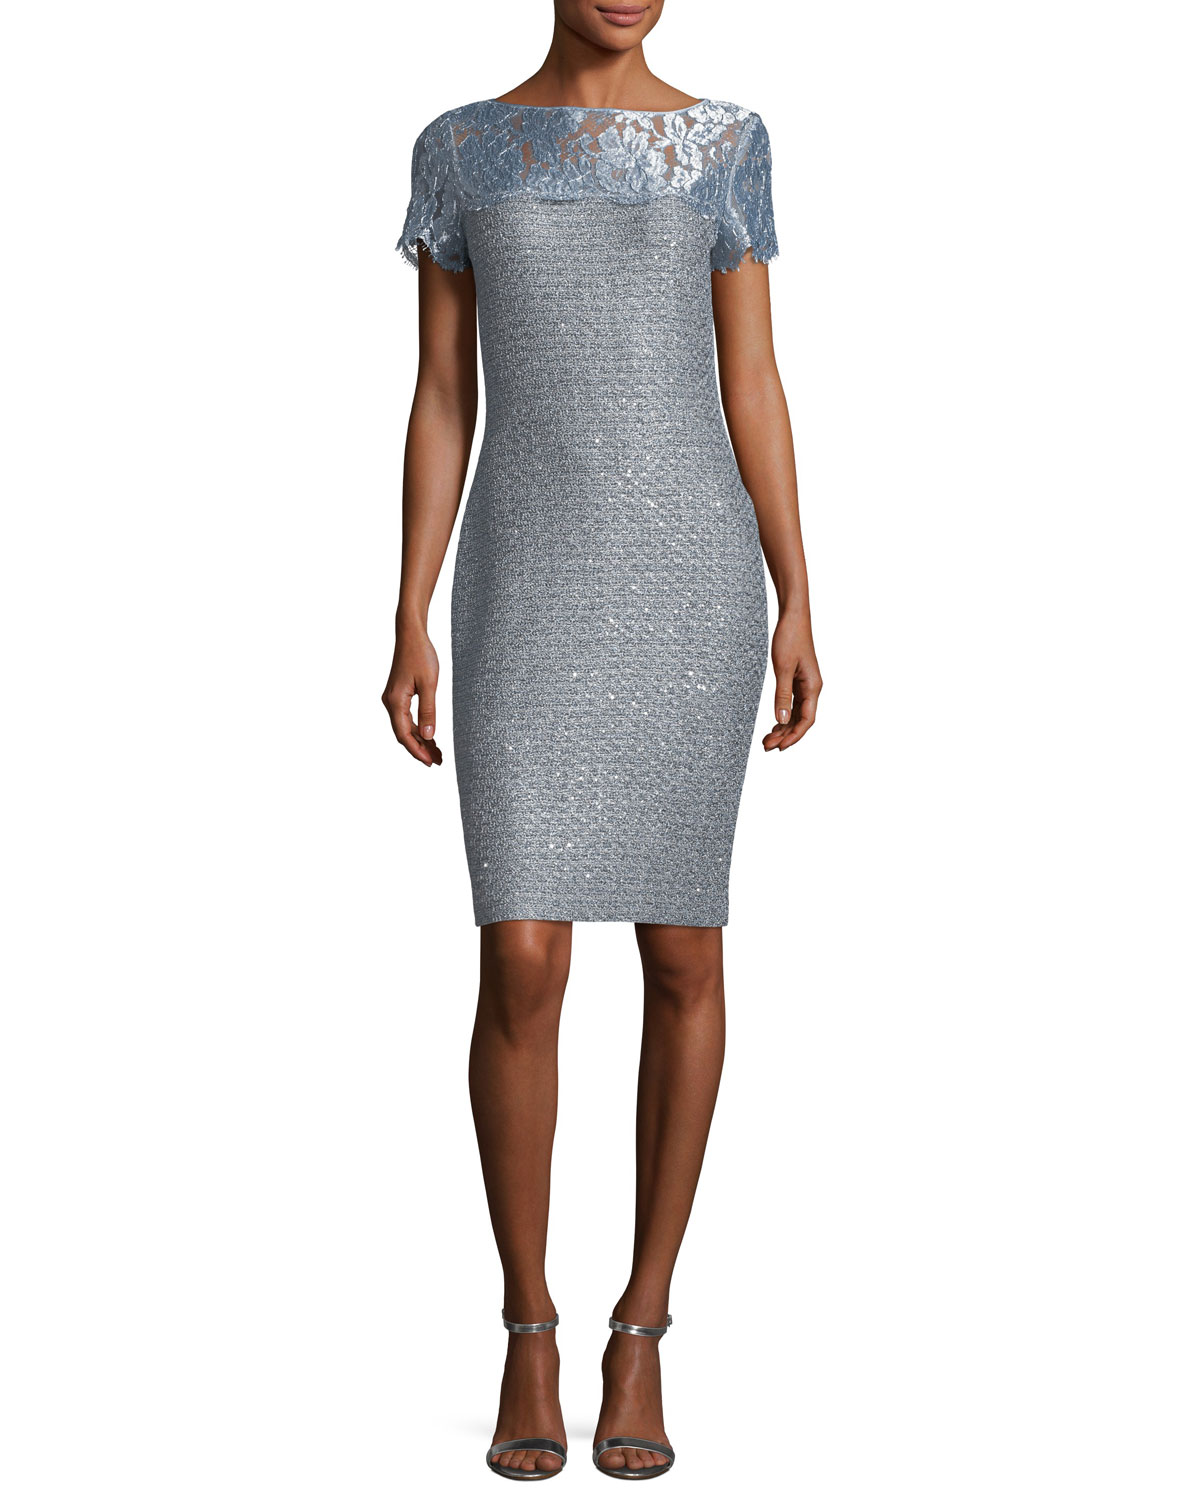 Metallic Sequined Knit Cocktail Sheath Dress